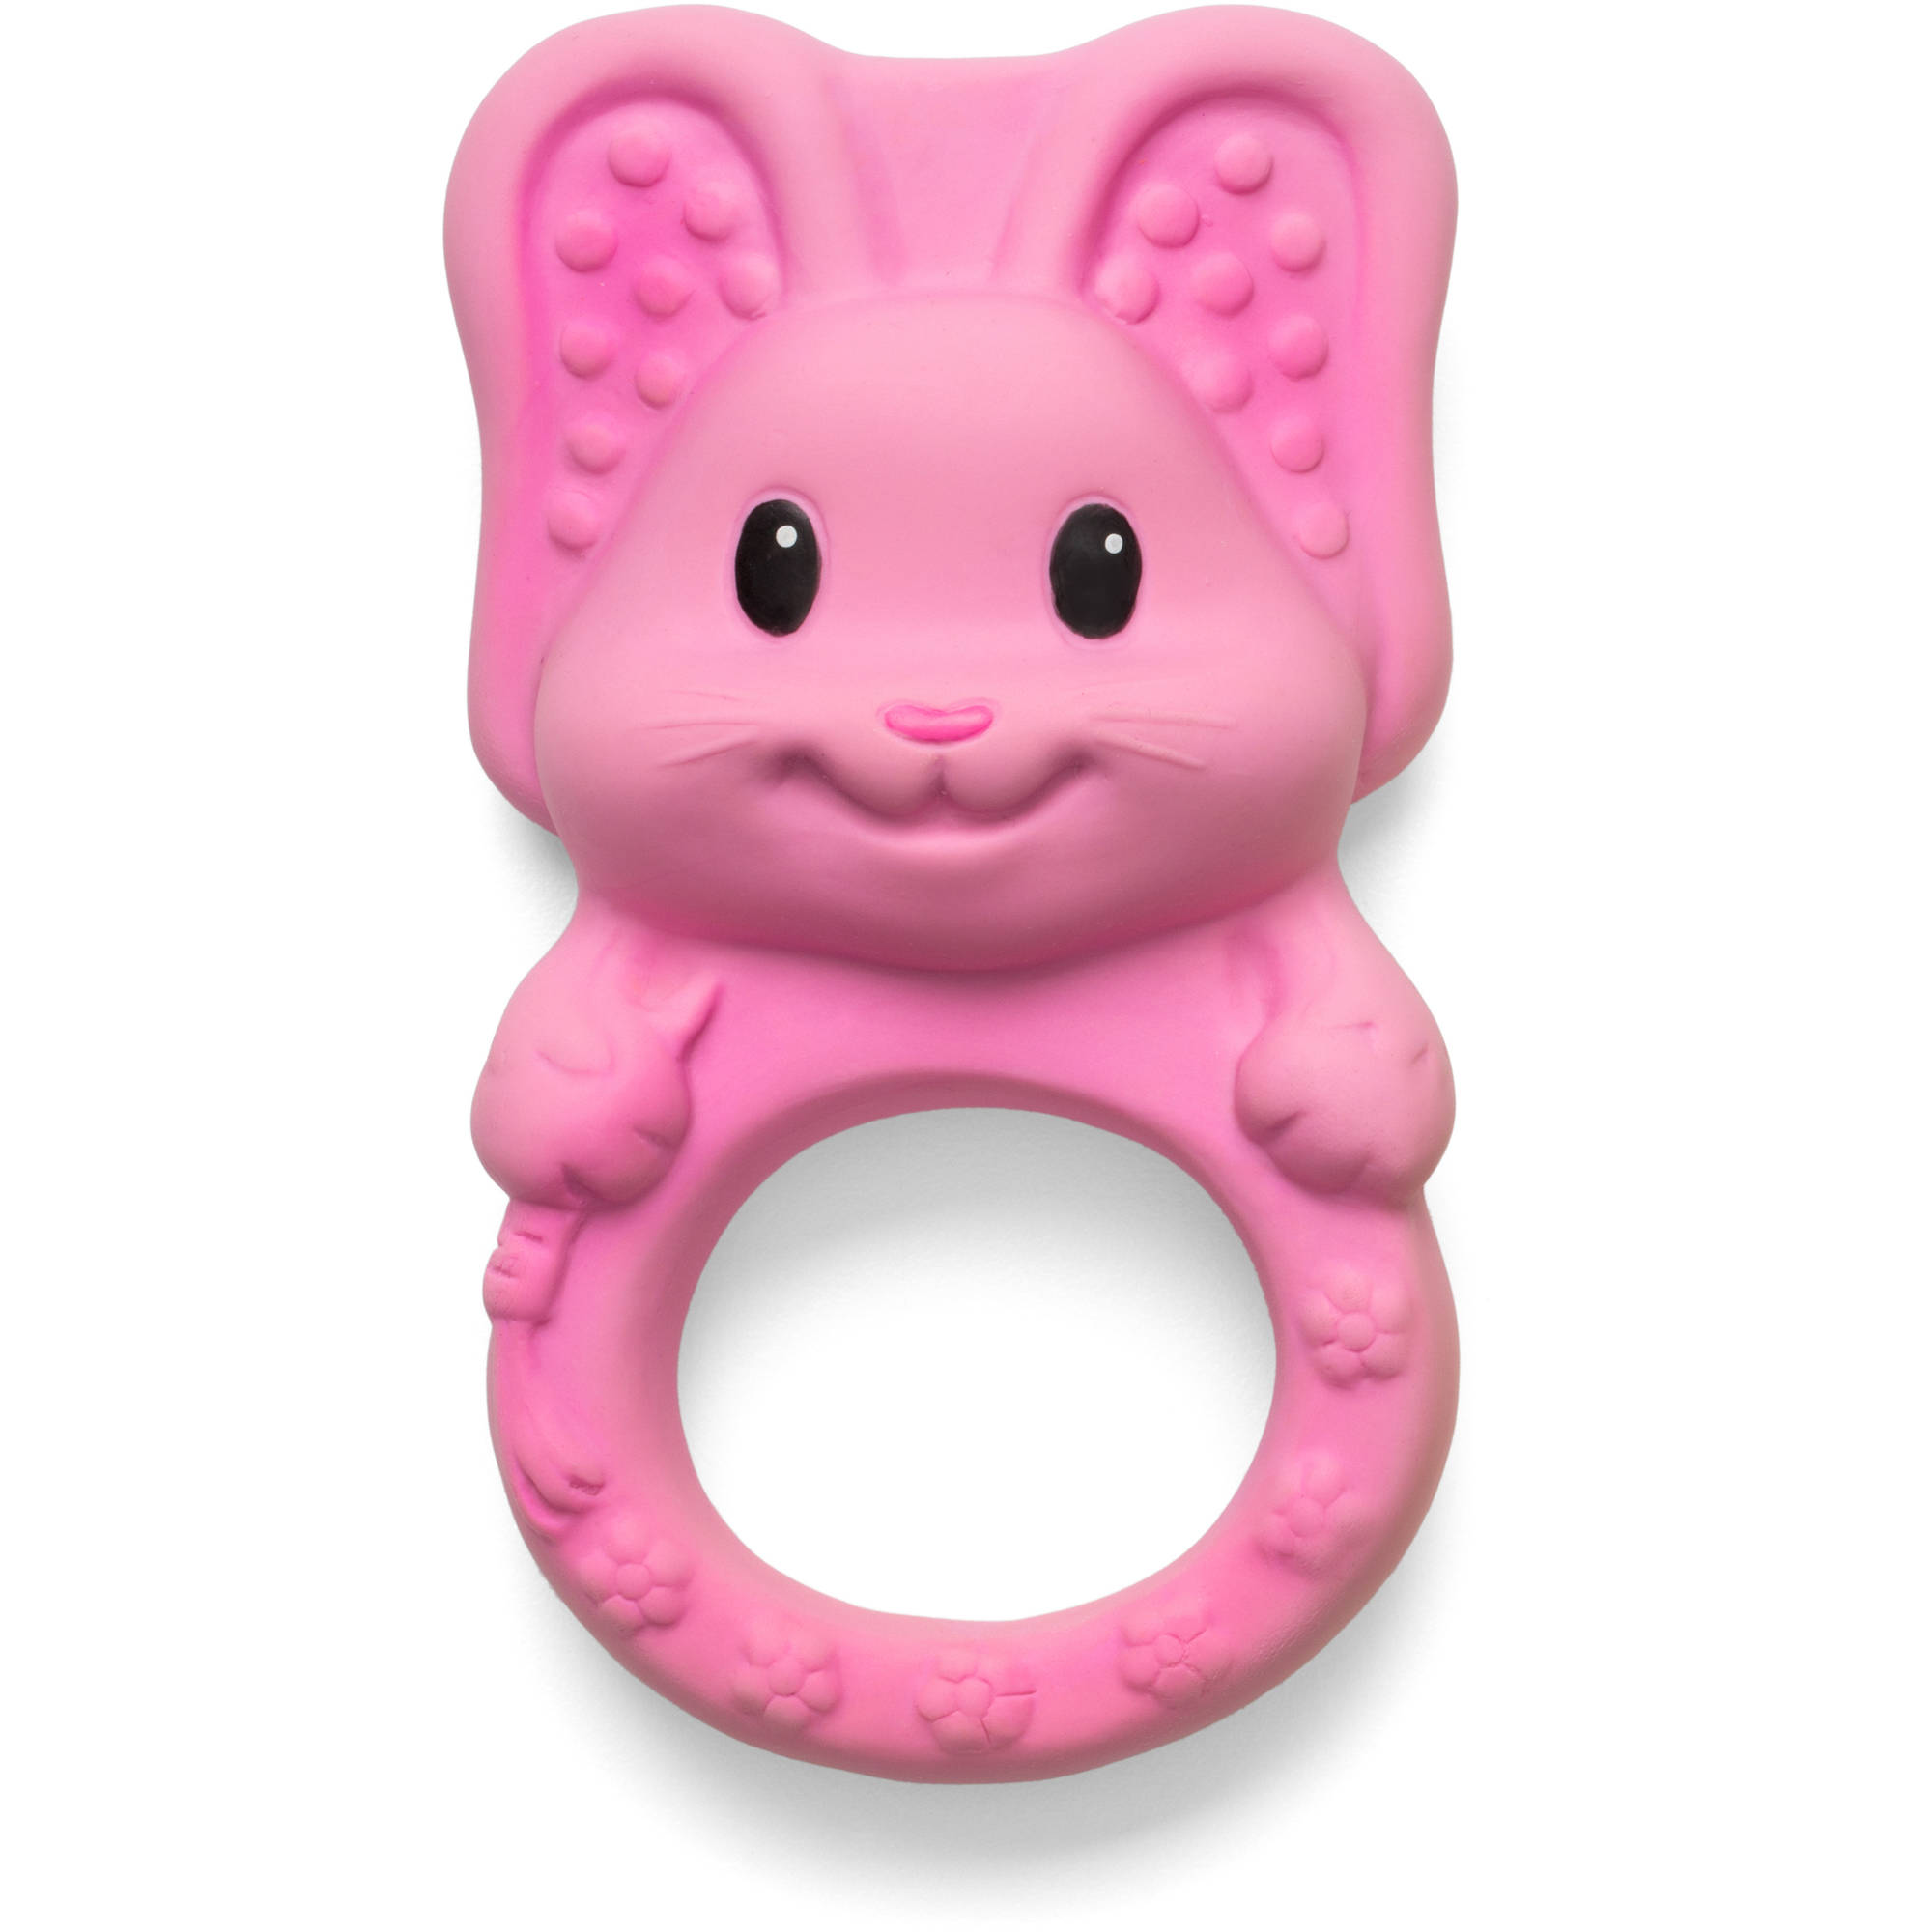 Infantino Squeeze & Teether Textured Pal Bunny